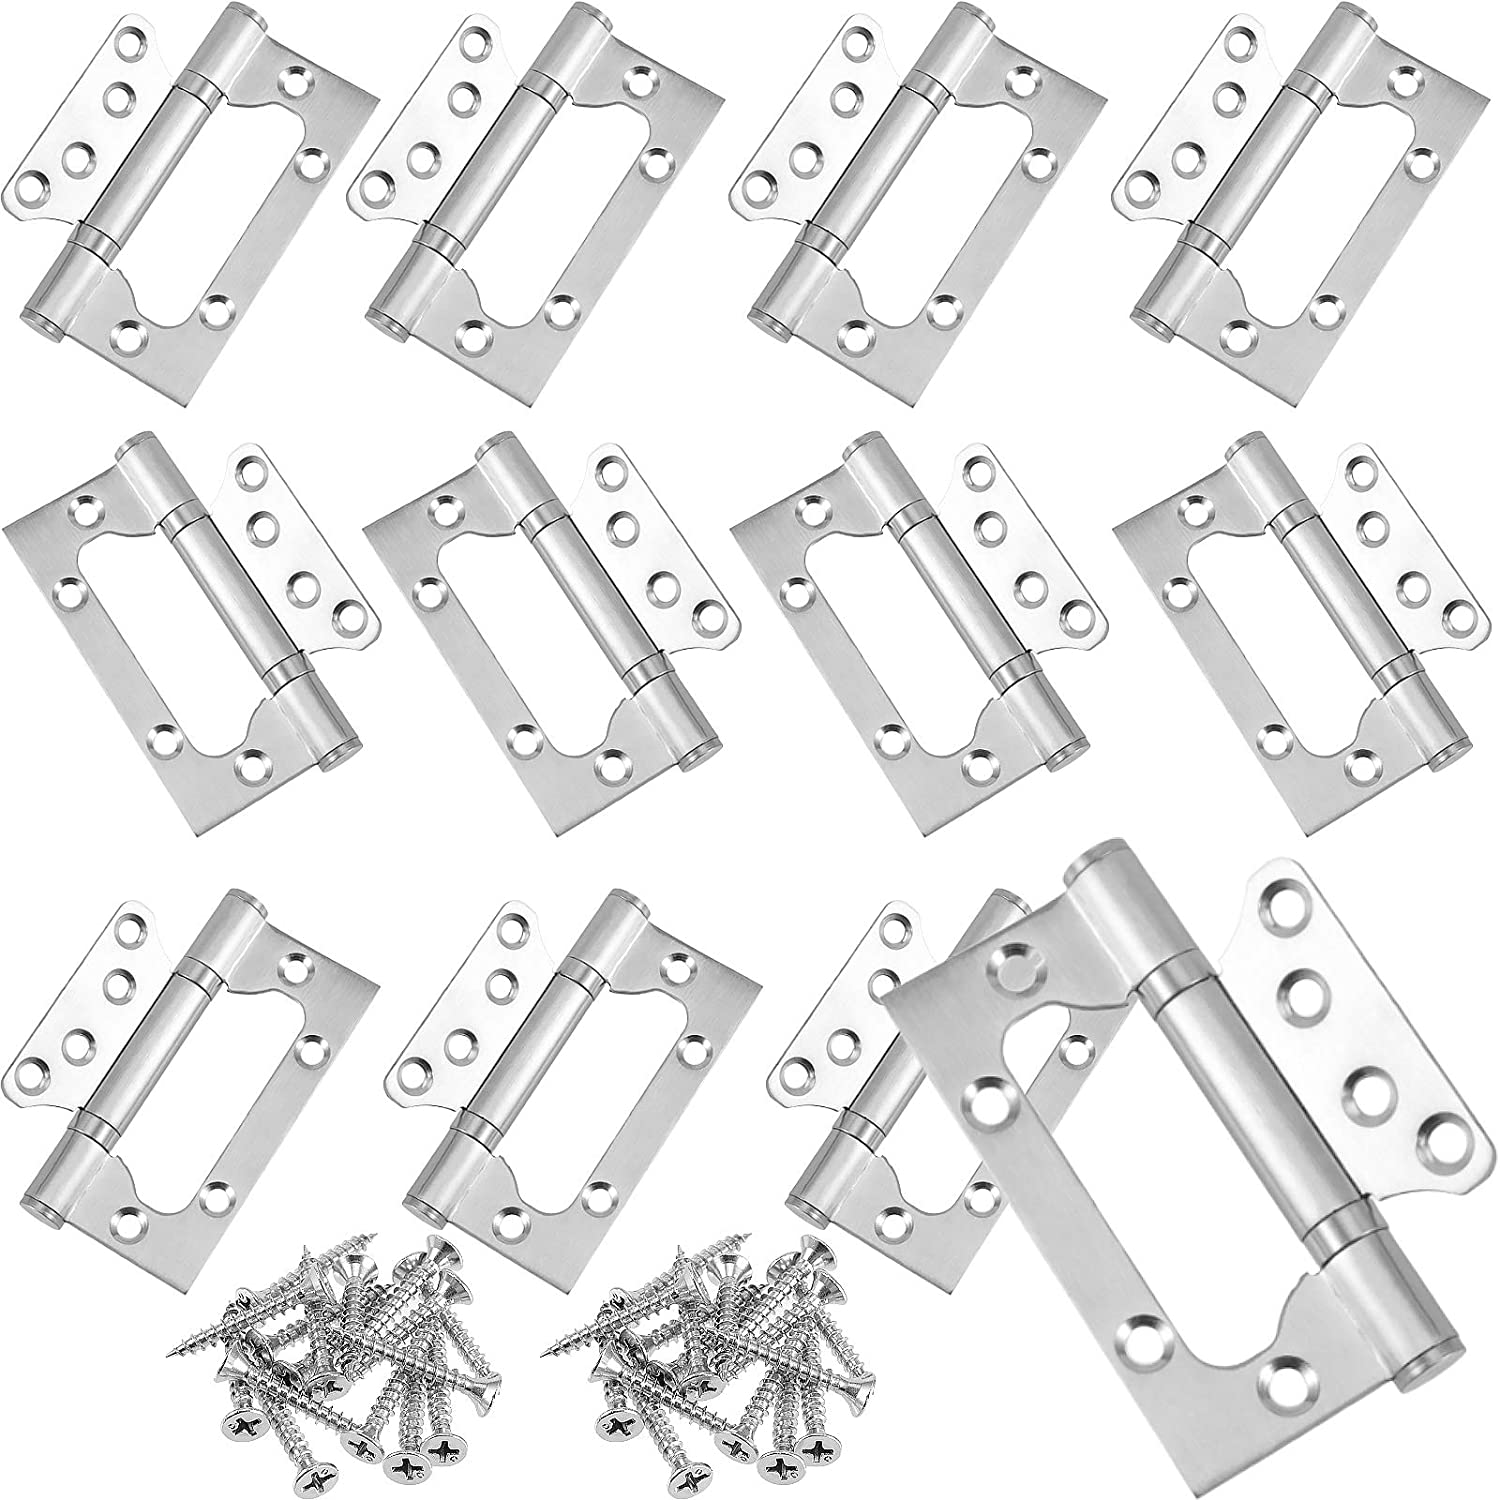 FAATCOI 12 PCS 4x3-Inch Non-Mortise Door Hinges, Stainless Steel Door Hinges Ball Bearing Heavy-Duty Brushed Steel Finish for Home Door Furniture, Shipped with 96 PCs Mounting Screws